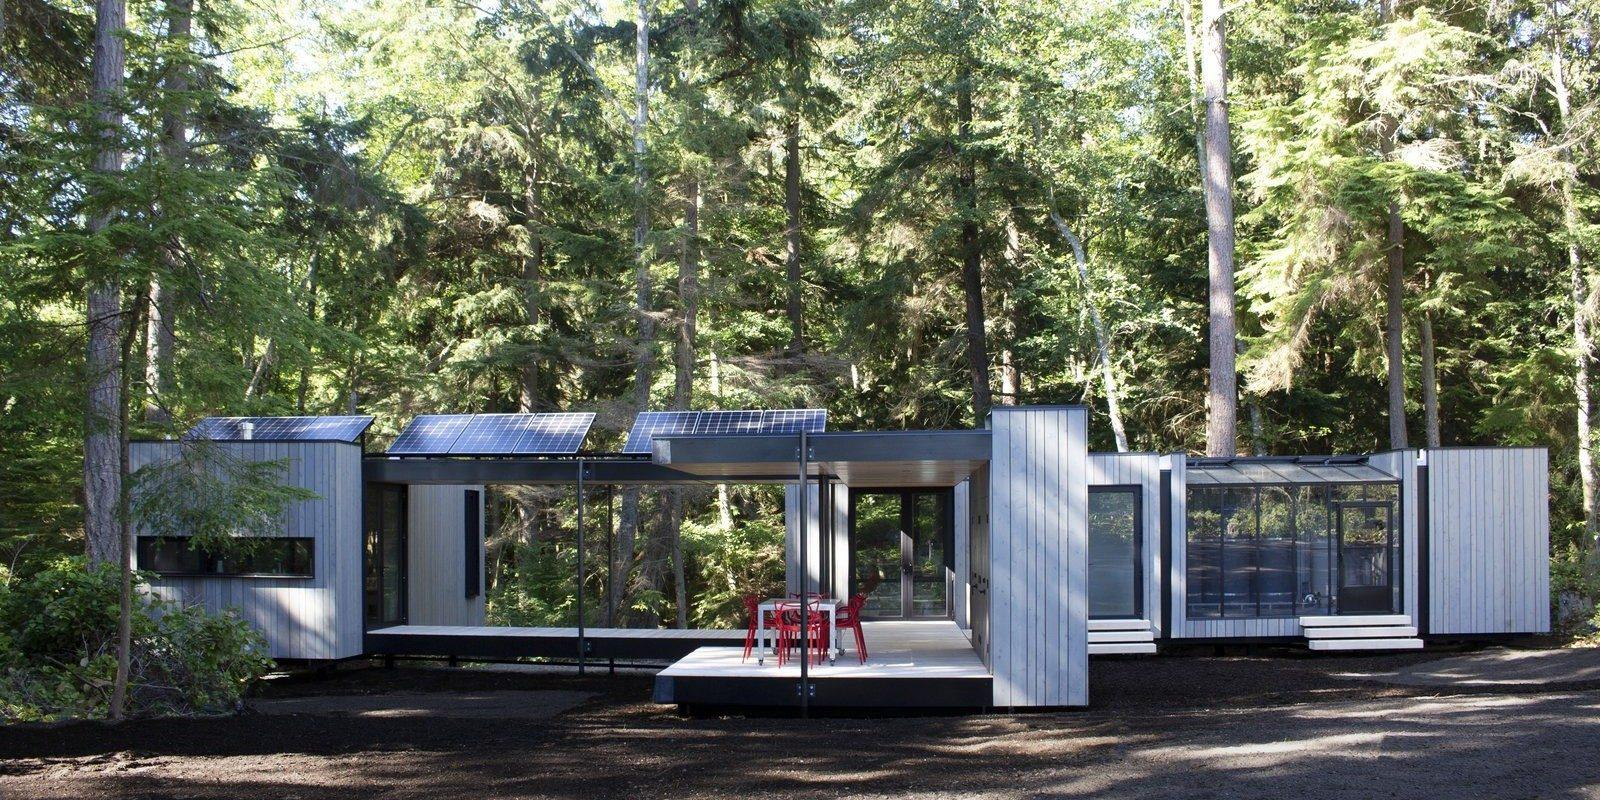 EGEB: This net zero house can be assembled like IKEA furniture